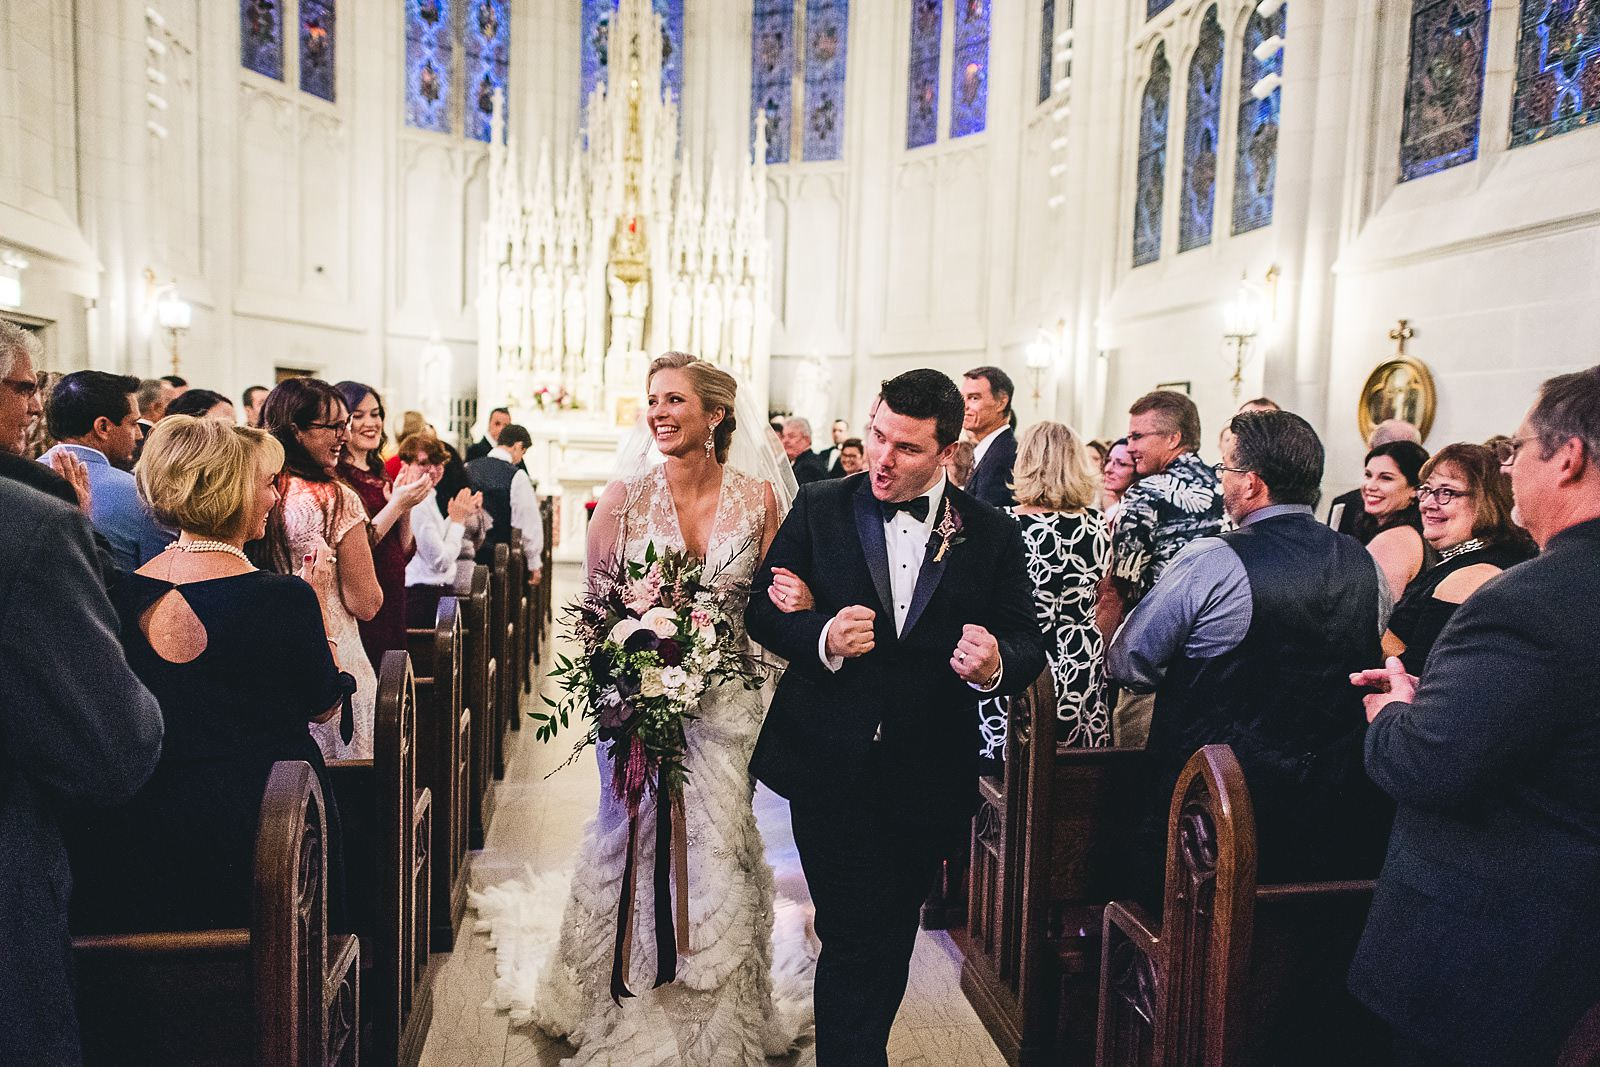 29 bride and groom married at st james chapel in chicago - Chicago Drake Hotel Wedding // Corie + Jordan